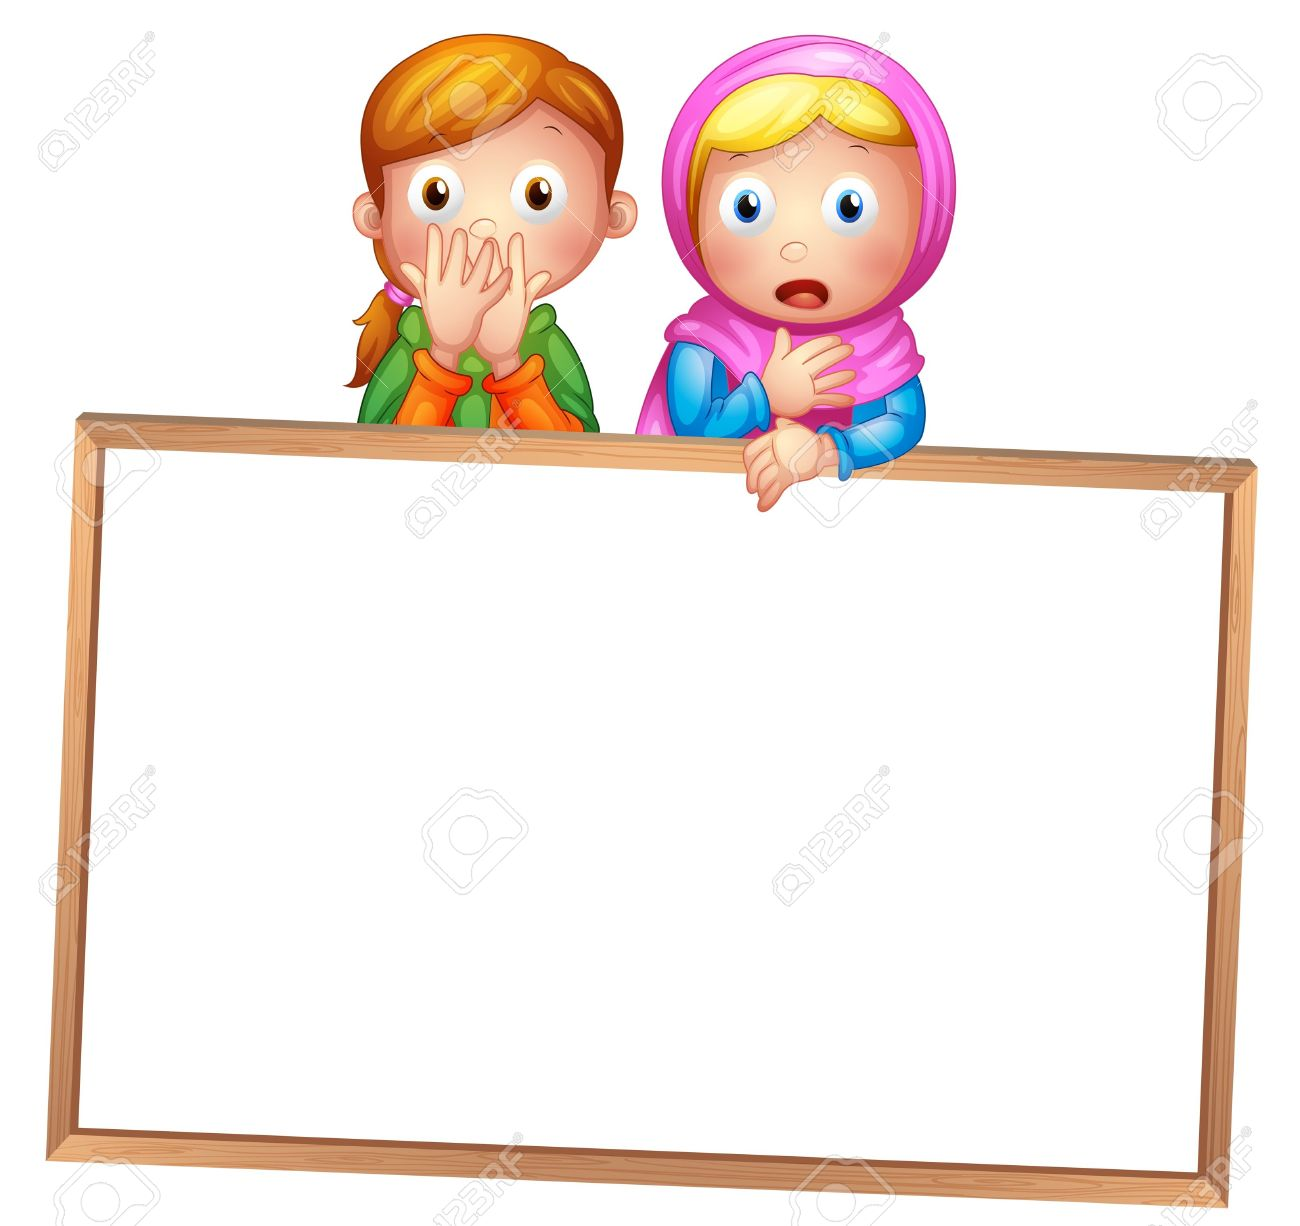 Illustration Of An Empty Framed White Board With Two Girls On.